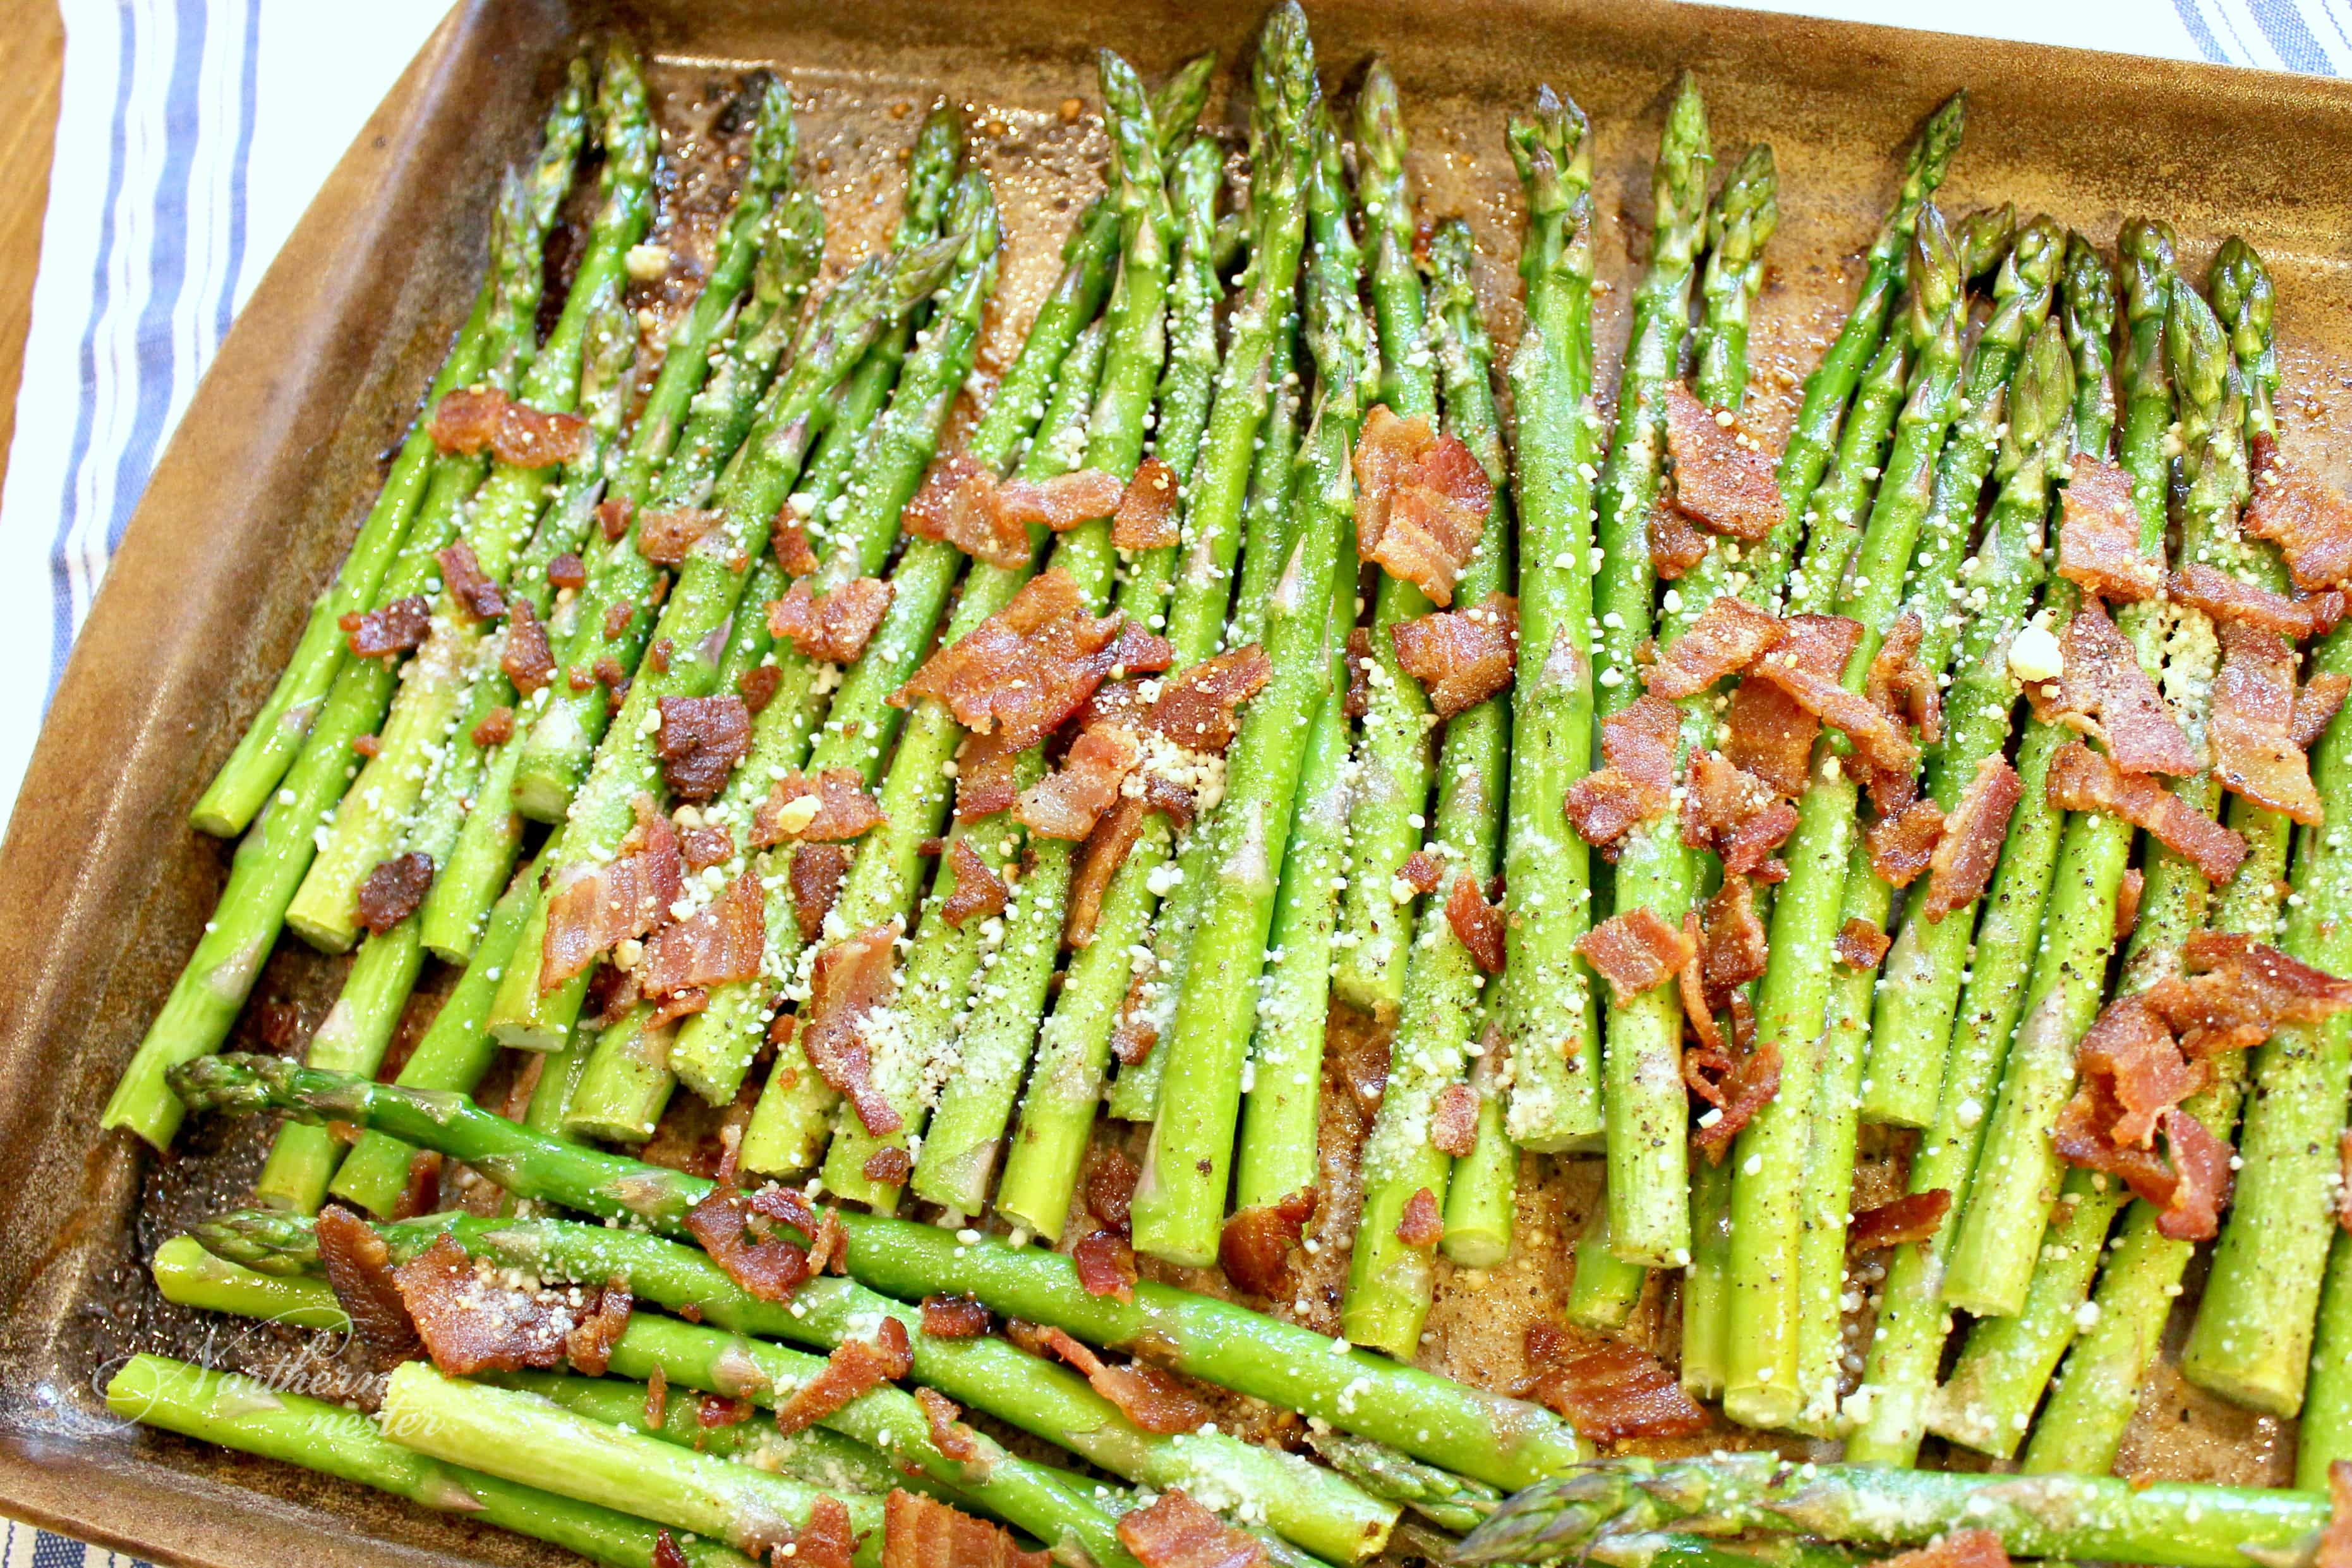 Bacon & Parmesan Roasted Asparagus